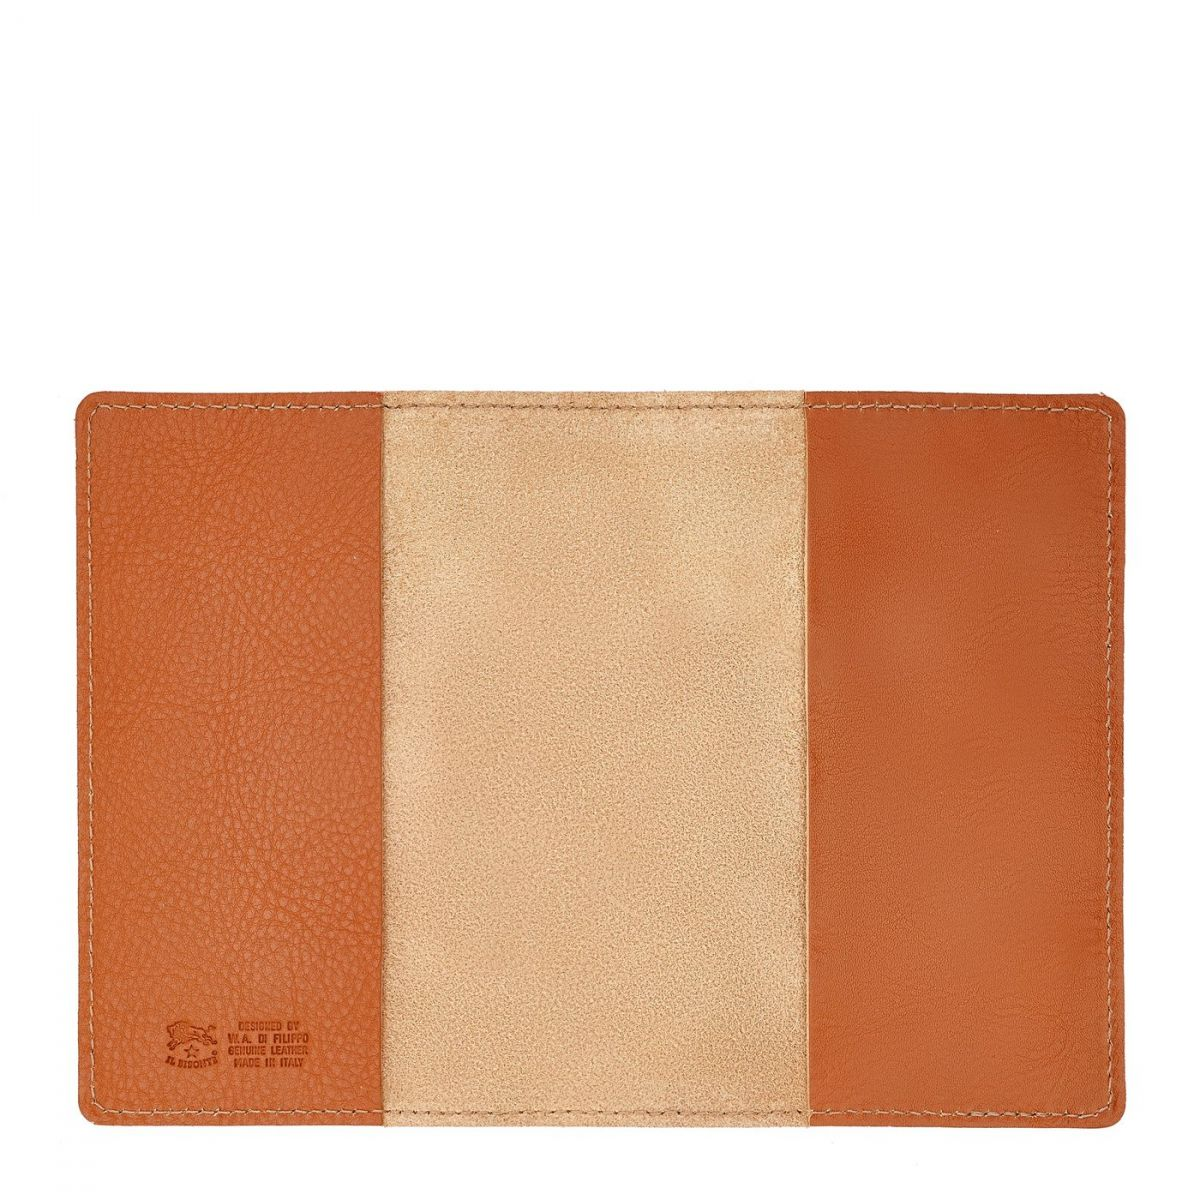 Case  in Cowhide Double Leather SCA005 color Caramel | Details